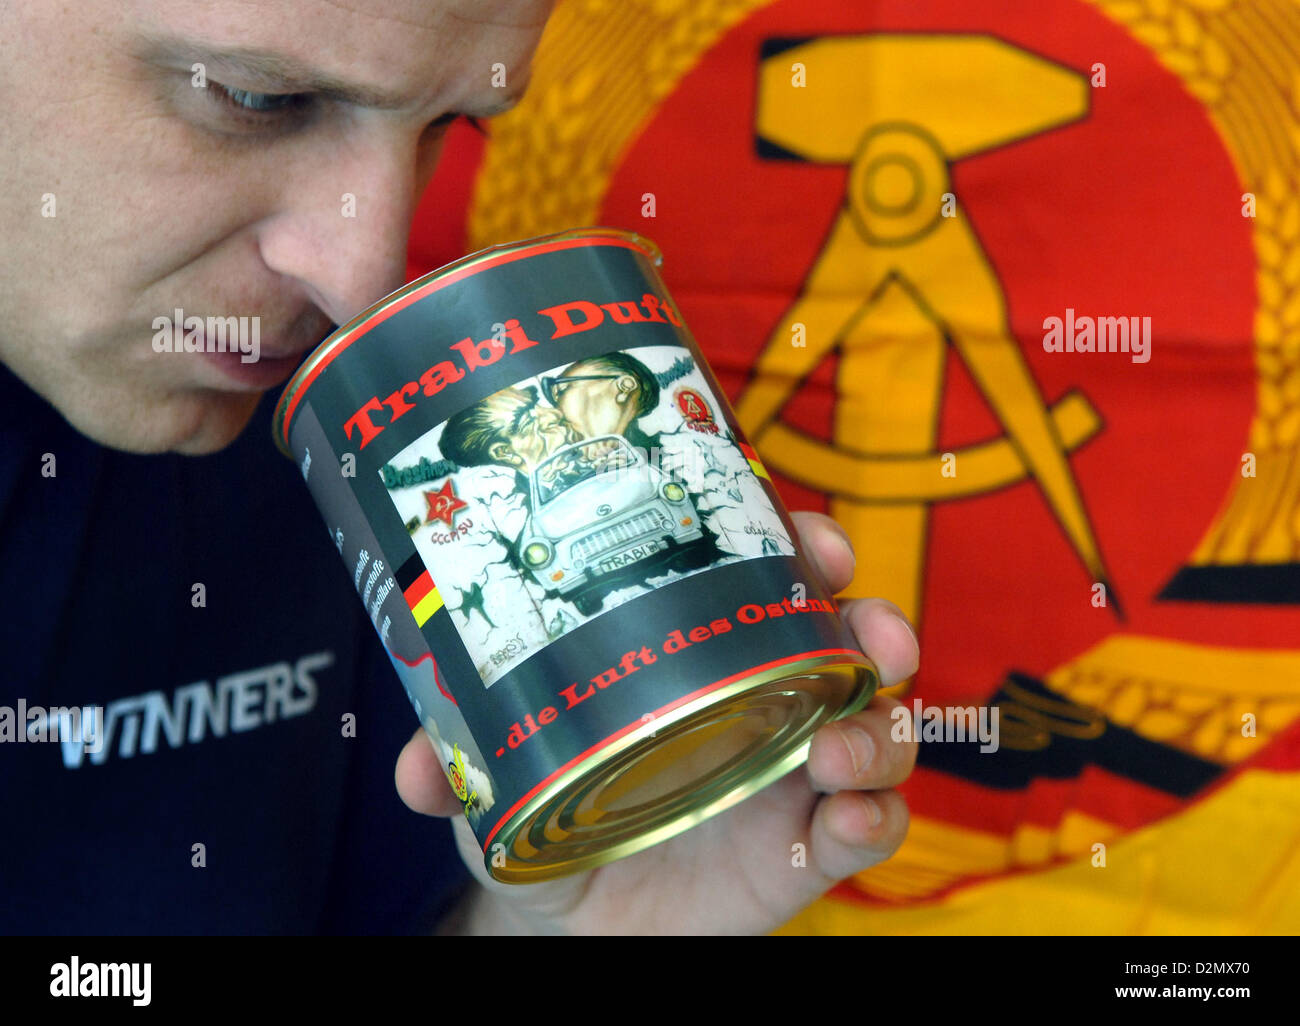 """Employee Andreas Weißbeck of Osthits.de smells at a can with """"Trabi Duft"""" (""""Trabant smell"""") in front of a GDR flag Stock Photo"""